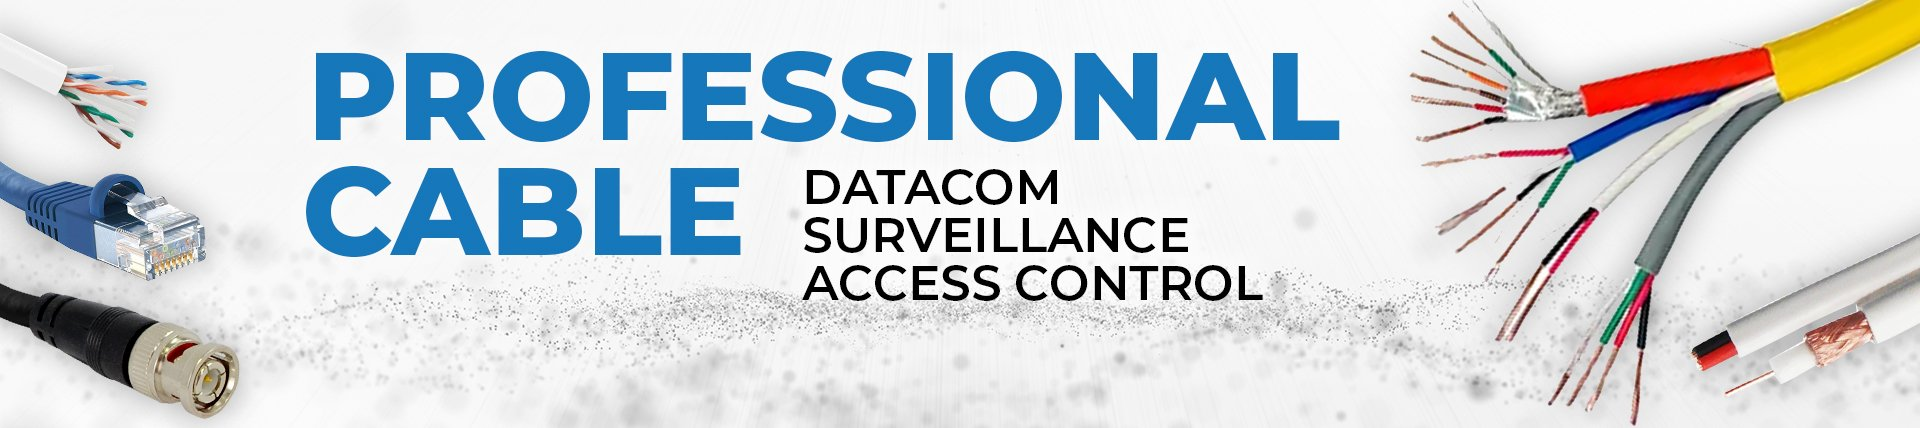 Professional Grade Datacom, Surveillance, and Access Control Cable from Optiview